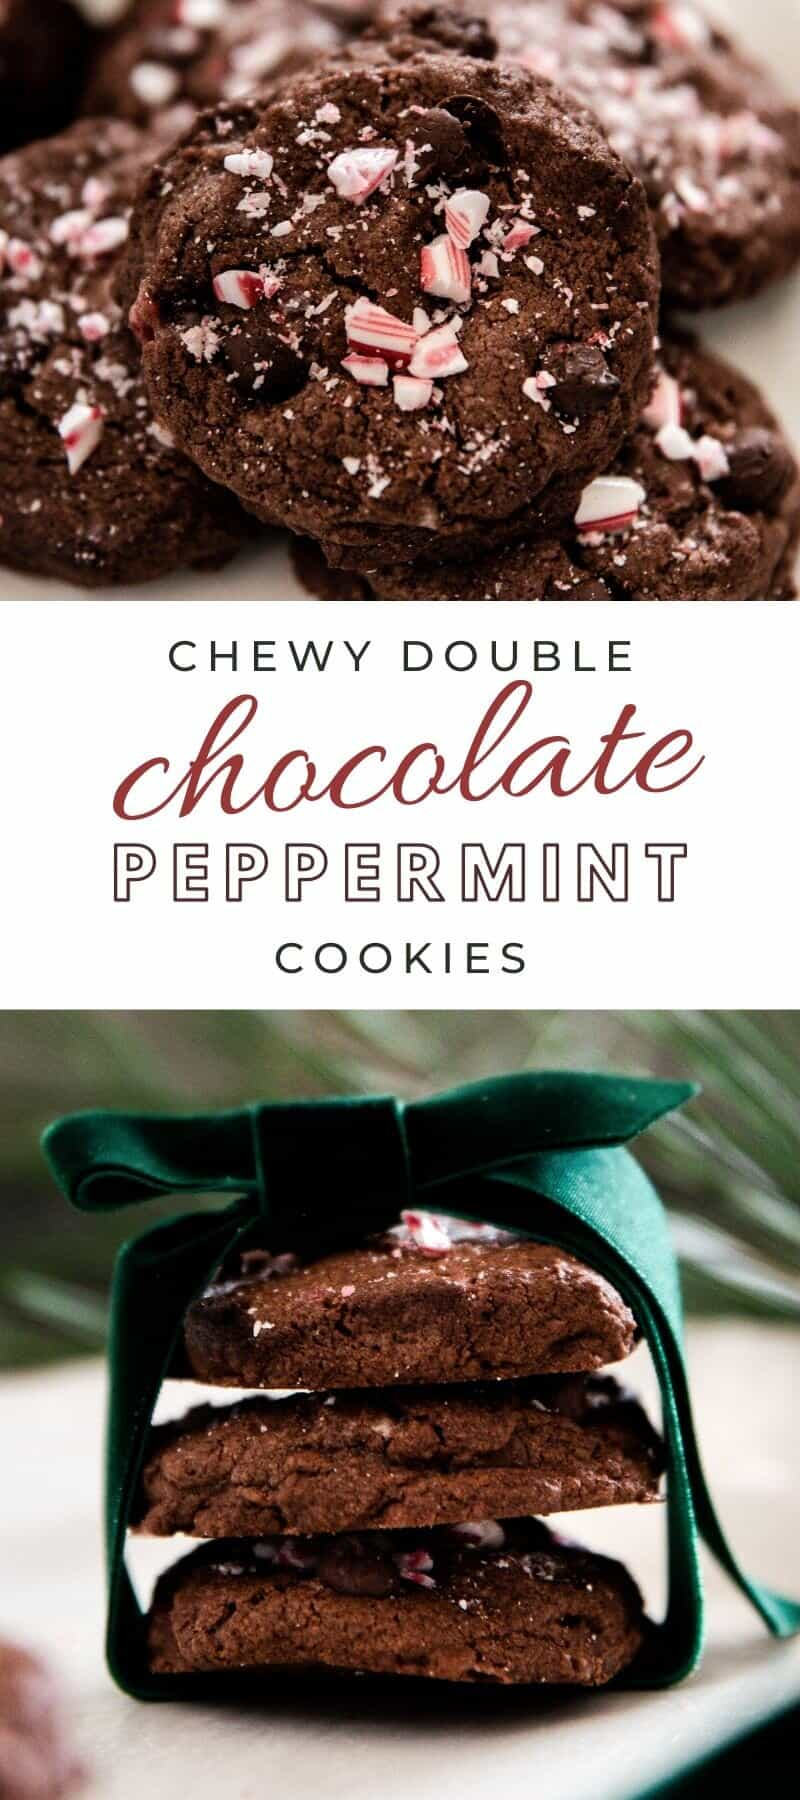 Chewy and delicious chocolate peppermint cookies are packed with cocoa powder, chocolate chips, peppermint extract, and crushed candy cane! There's a burst of Christmas flavor in every bite!